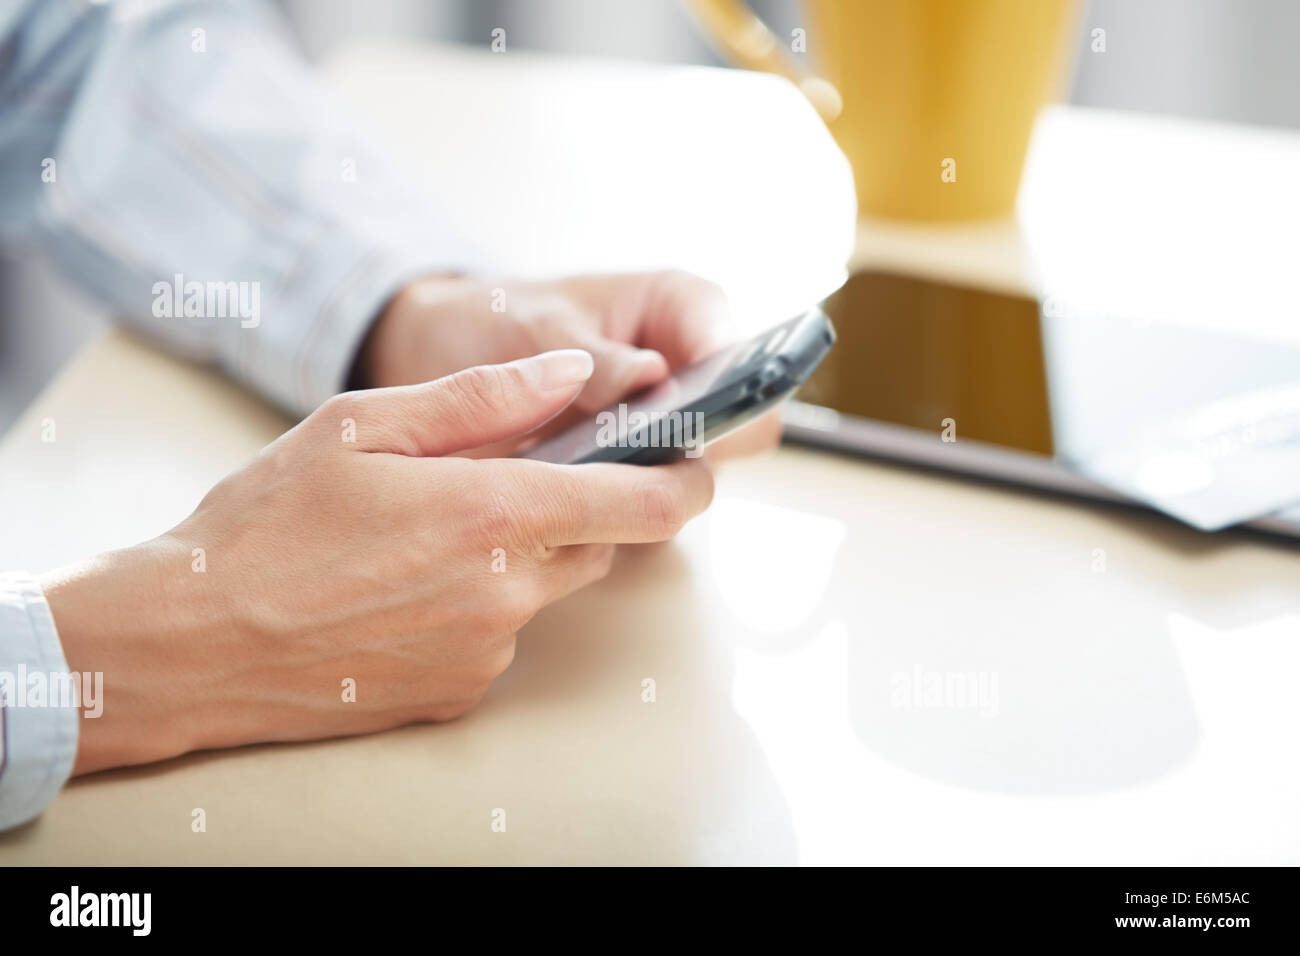 Hands of woman sending SMS via smartphone at lunch Stock